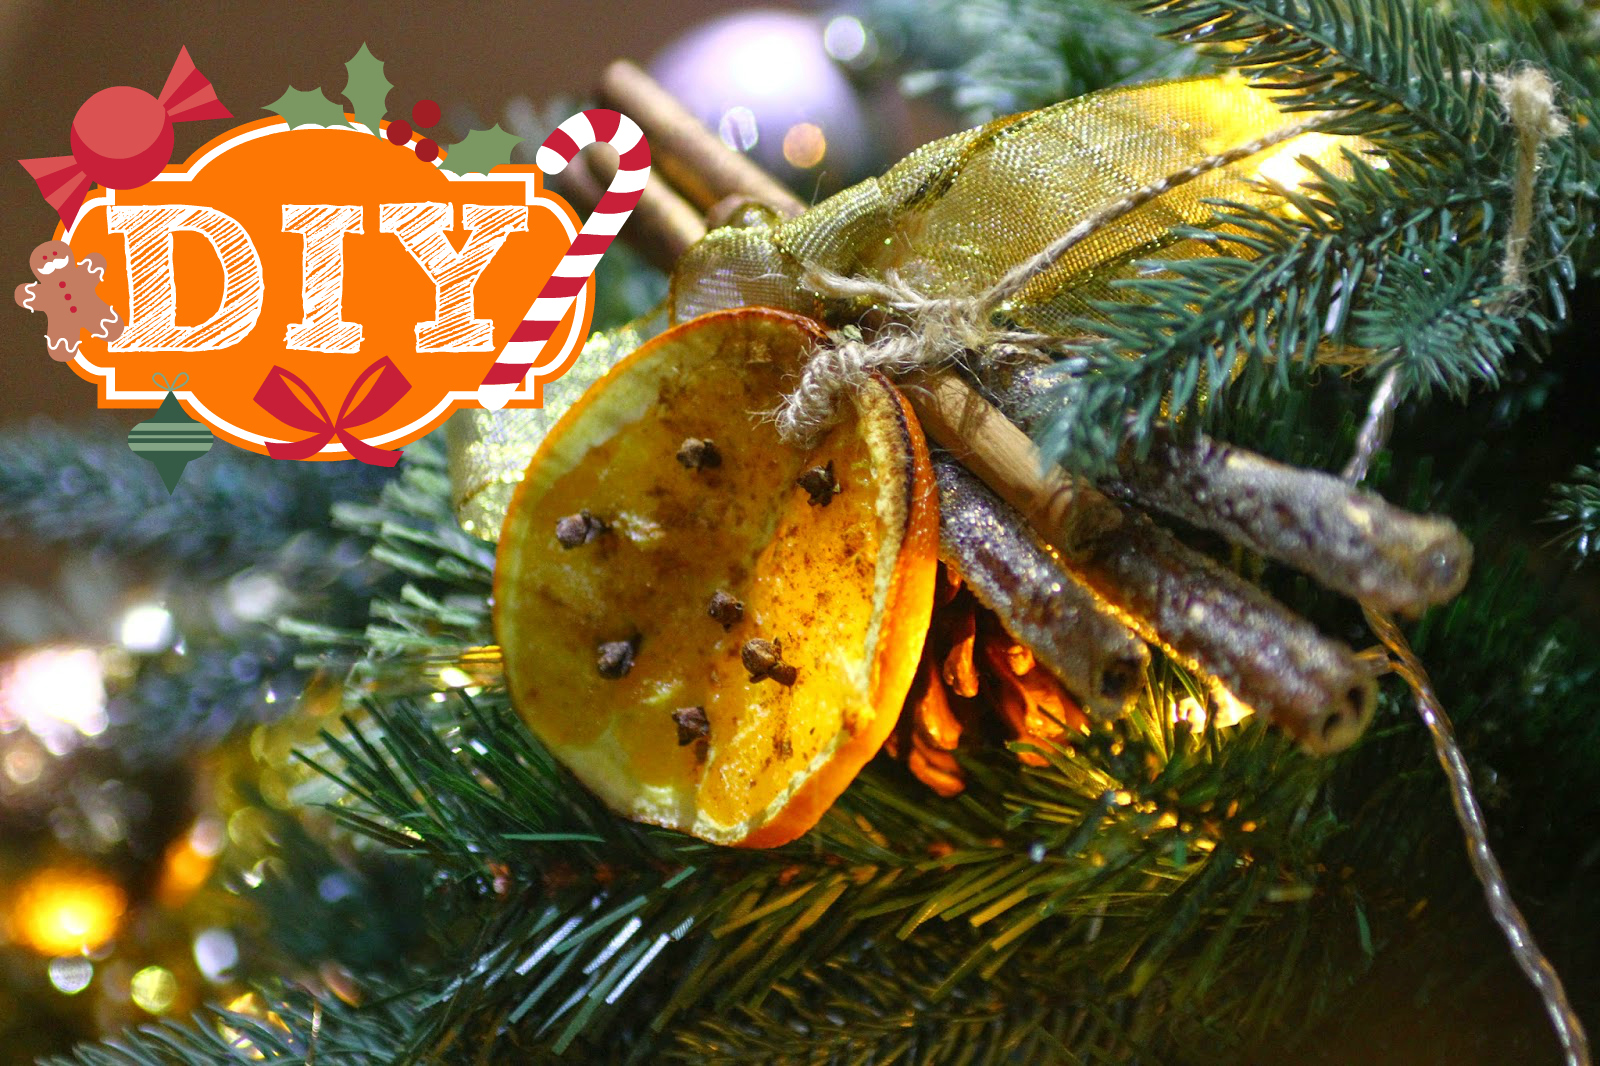 above watch my diy cinnamon orange christmas tree decorations video